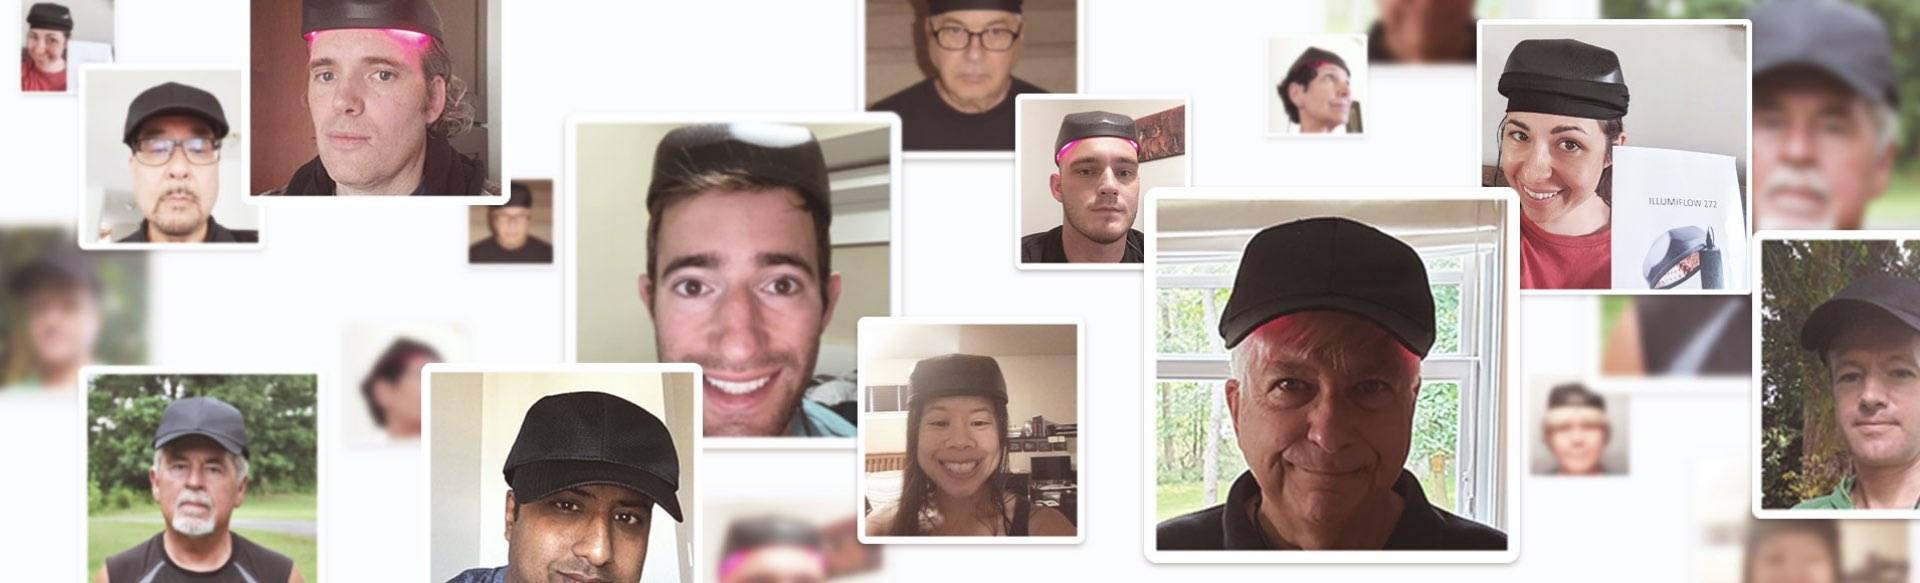 Selfie montage collected from illumiflow laser cap reviews